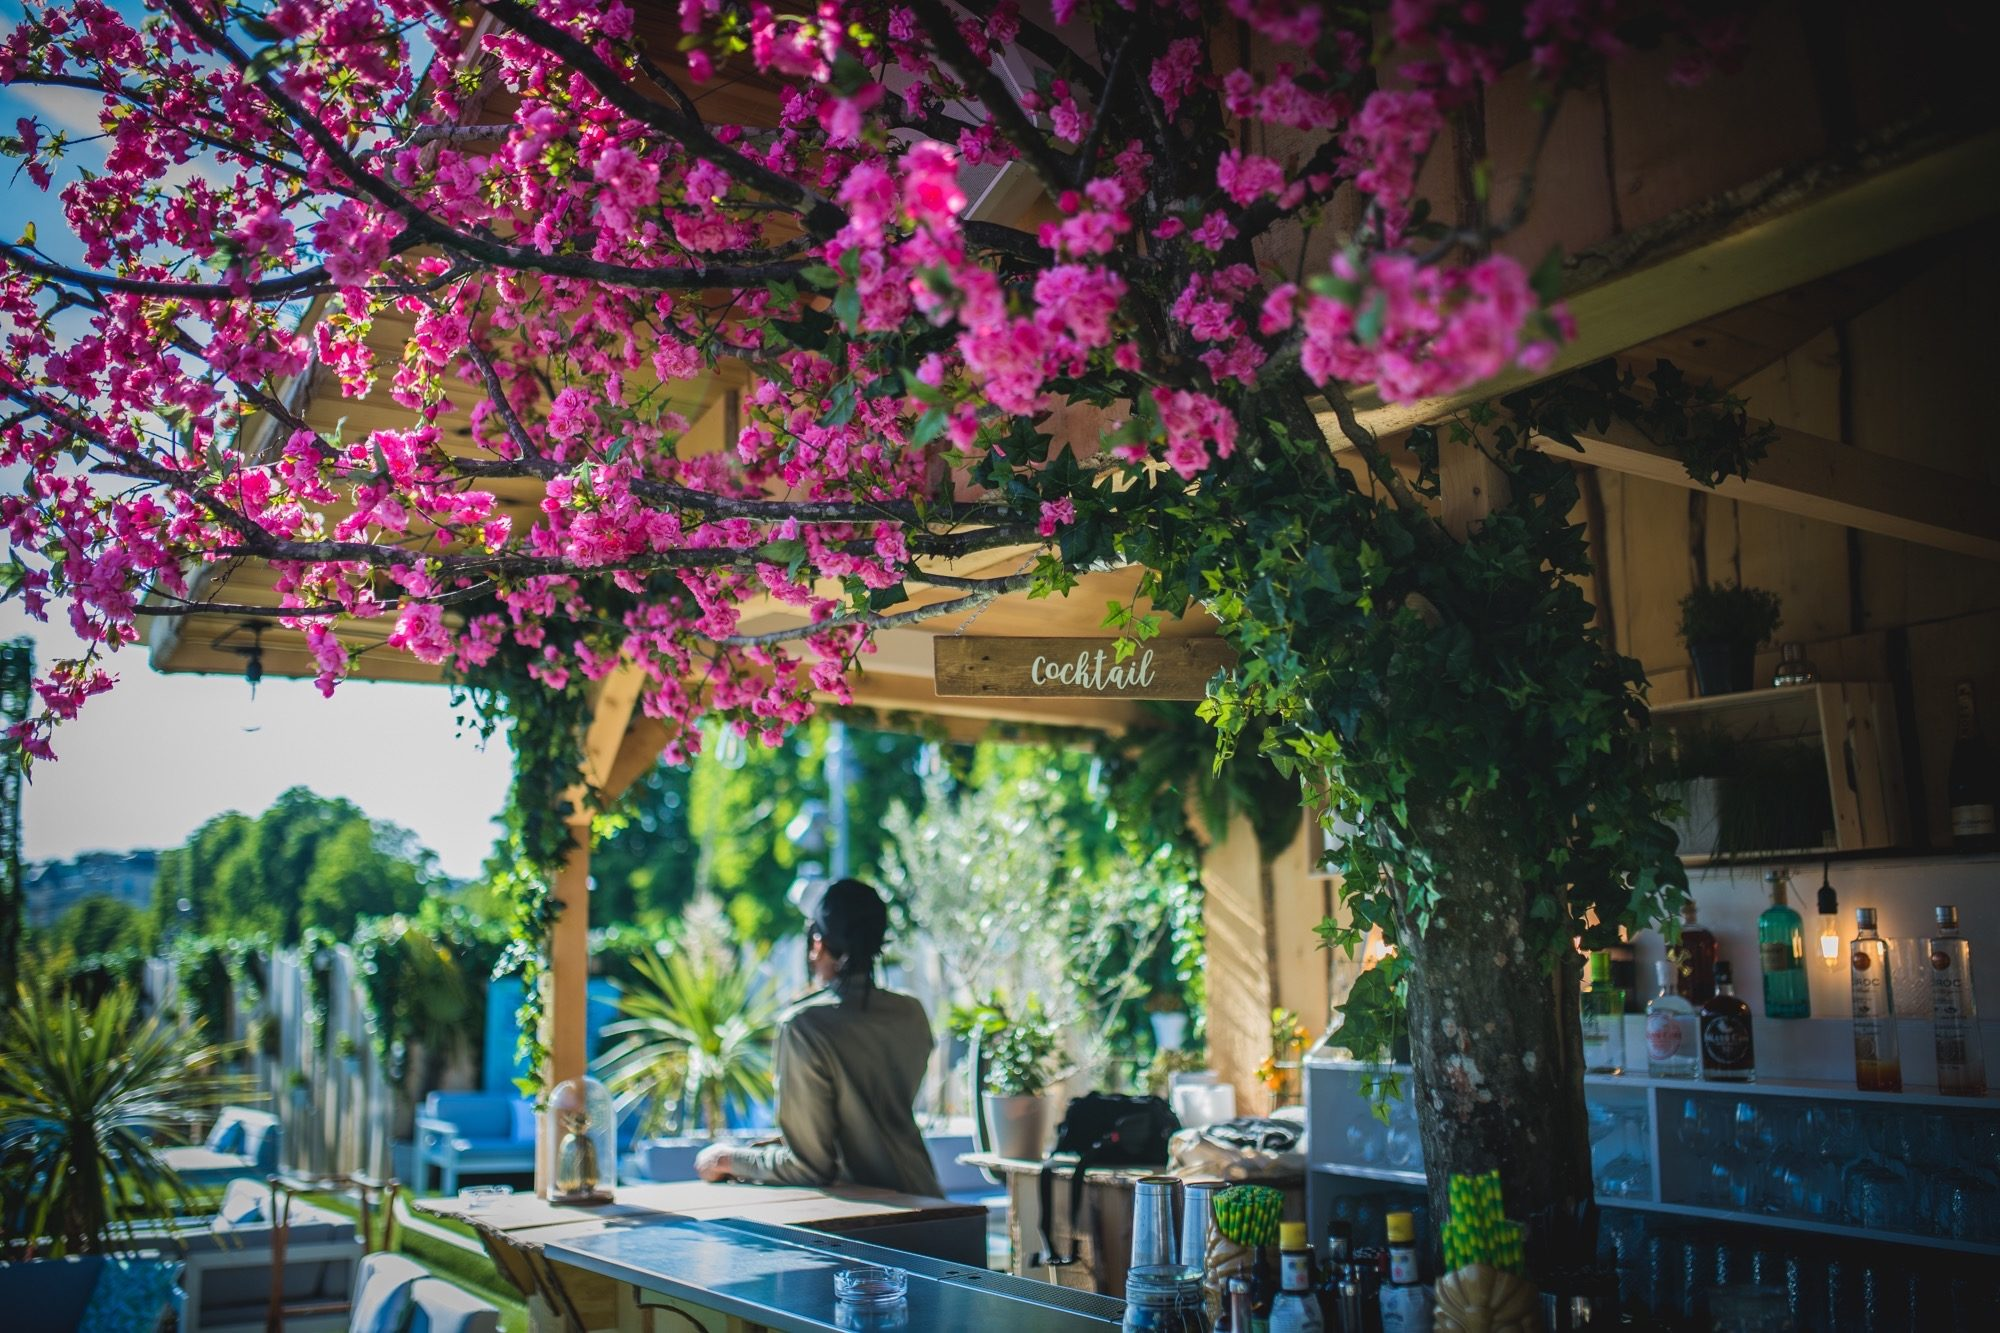 The fabulous pink flowery trees on the leafy green deck of the Mademoiselle Mouche bar, which floats on the river Seine.